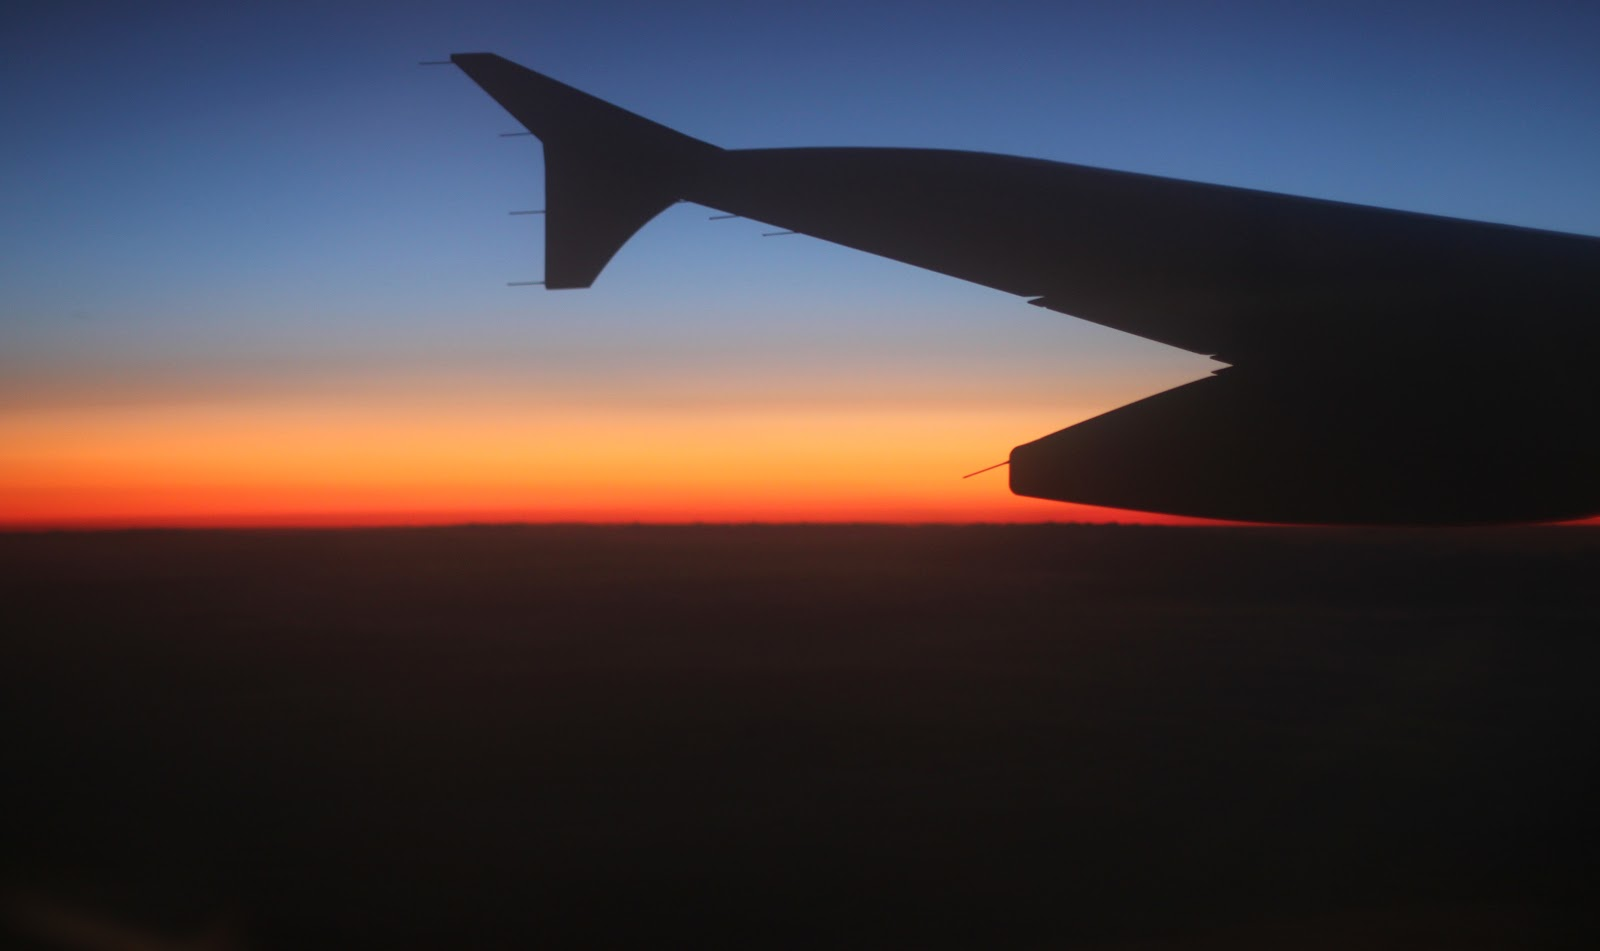 Sunset as viewed from the plane